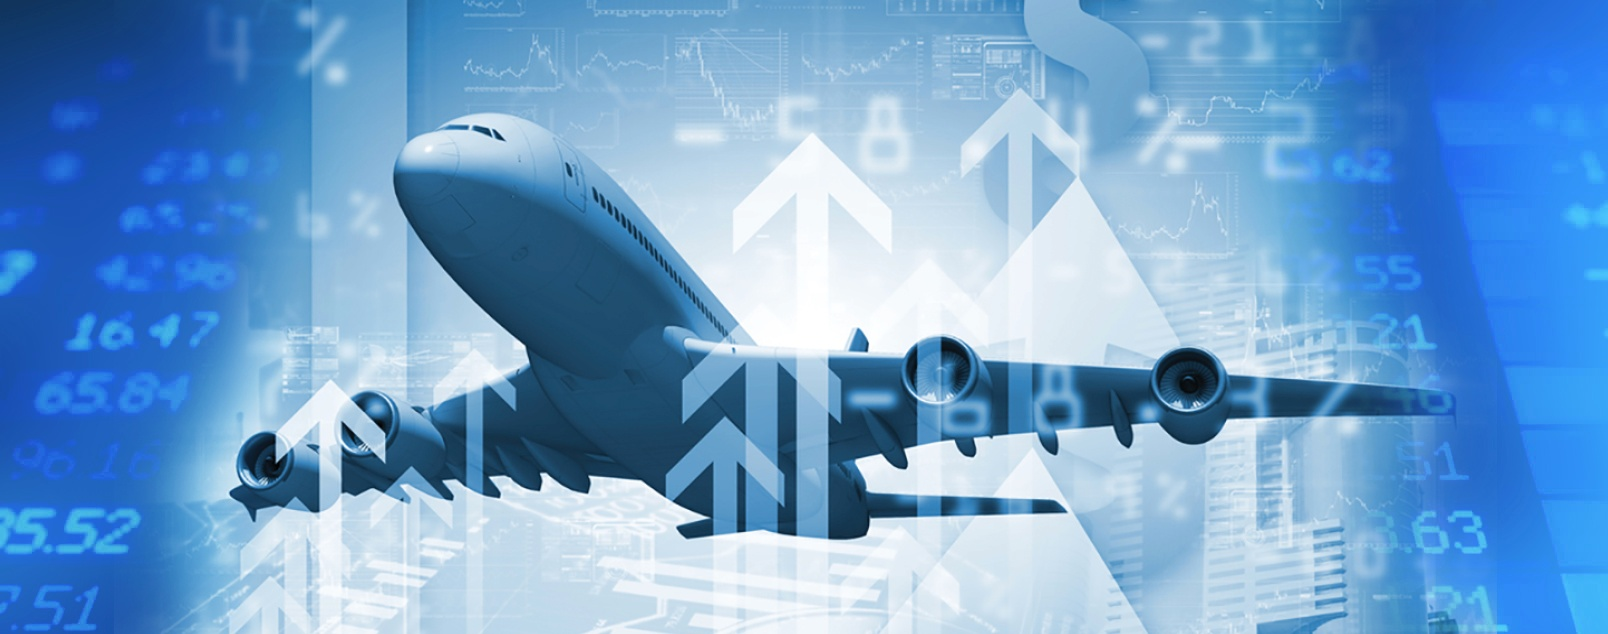 Vistair - 3 ways to make airline operations more efficient